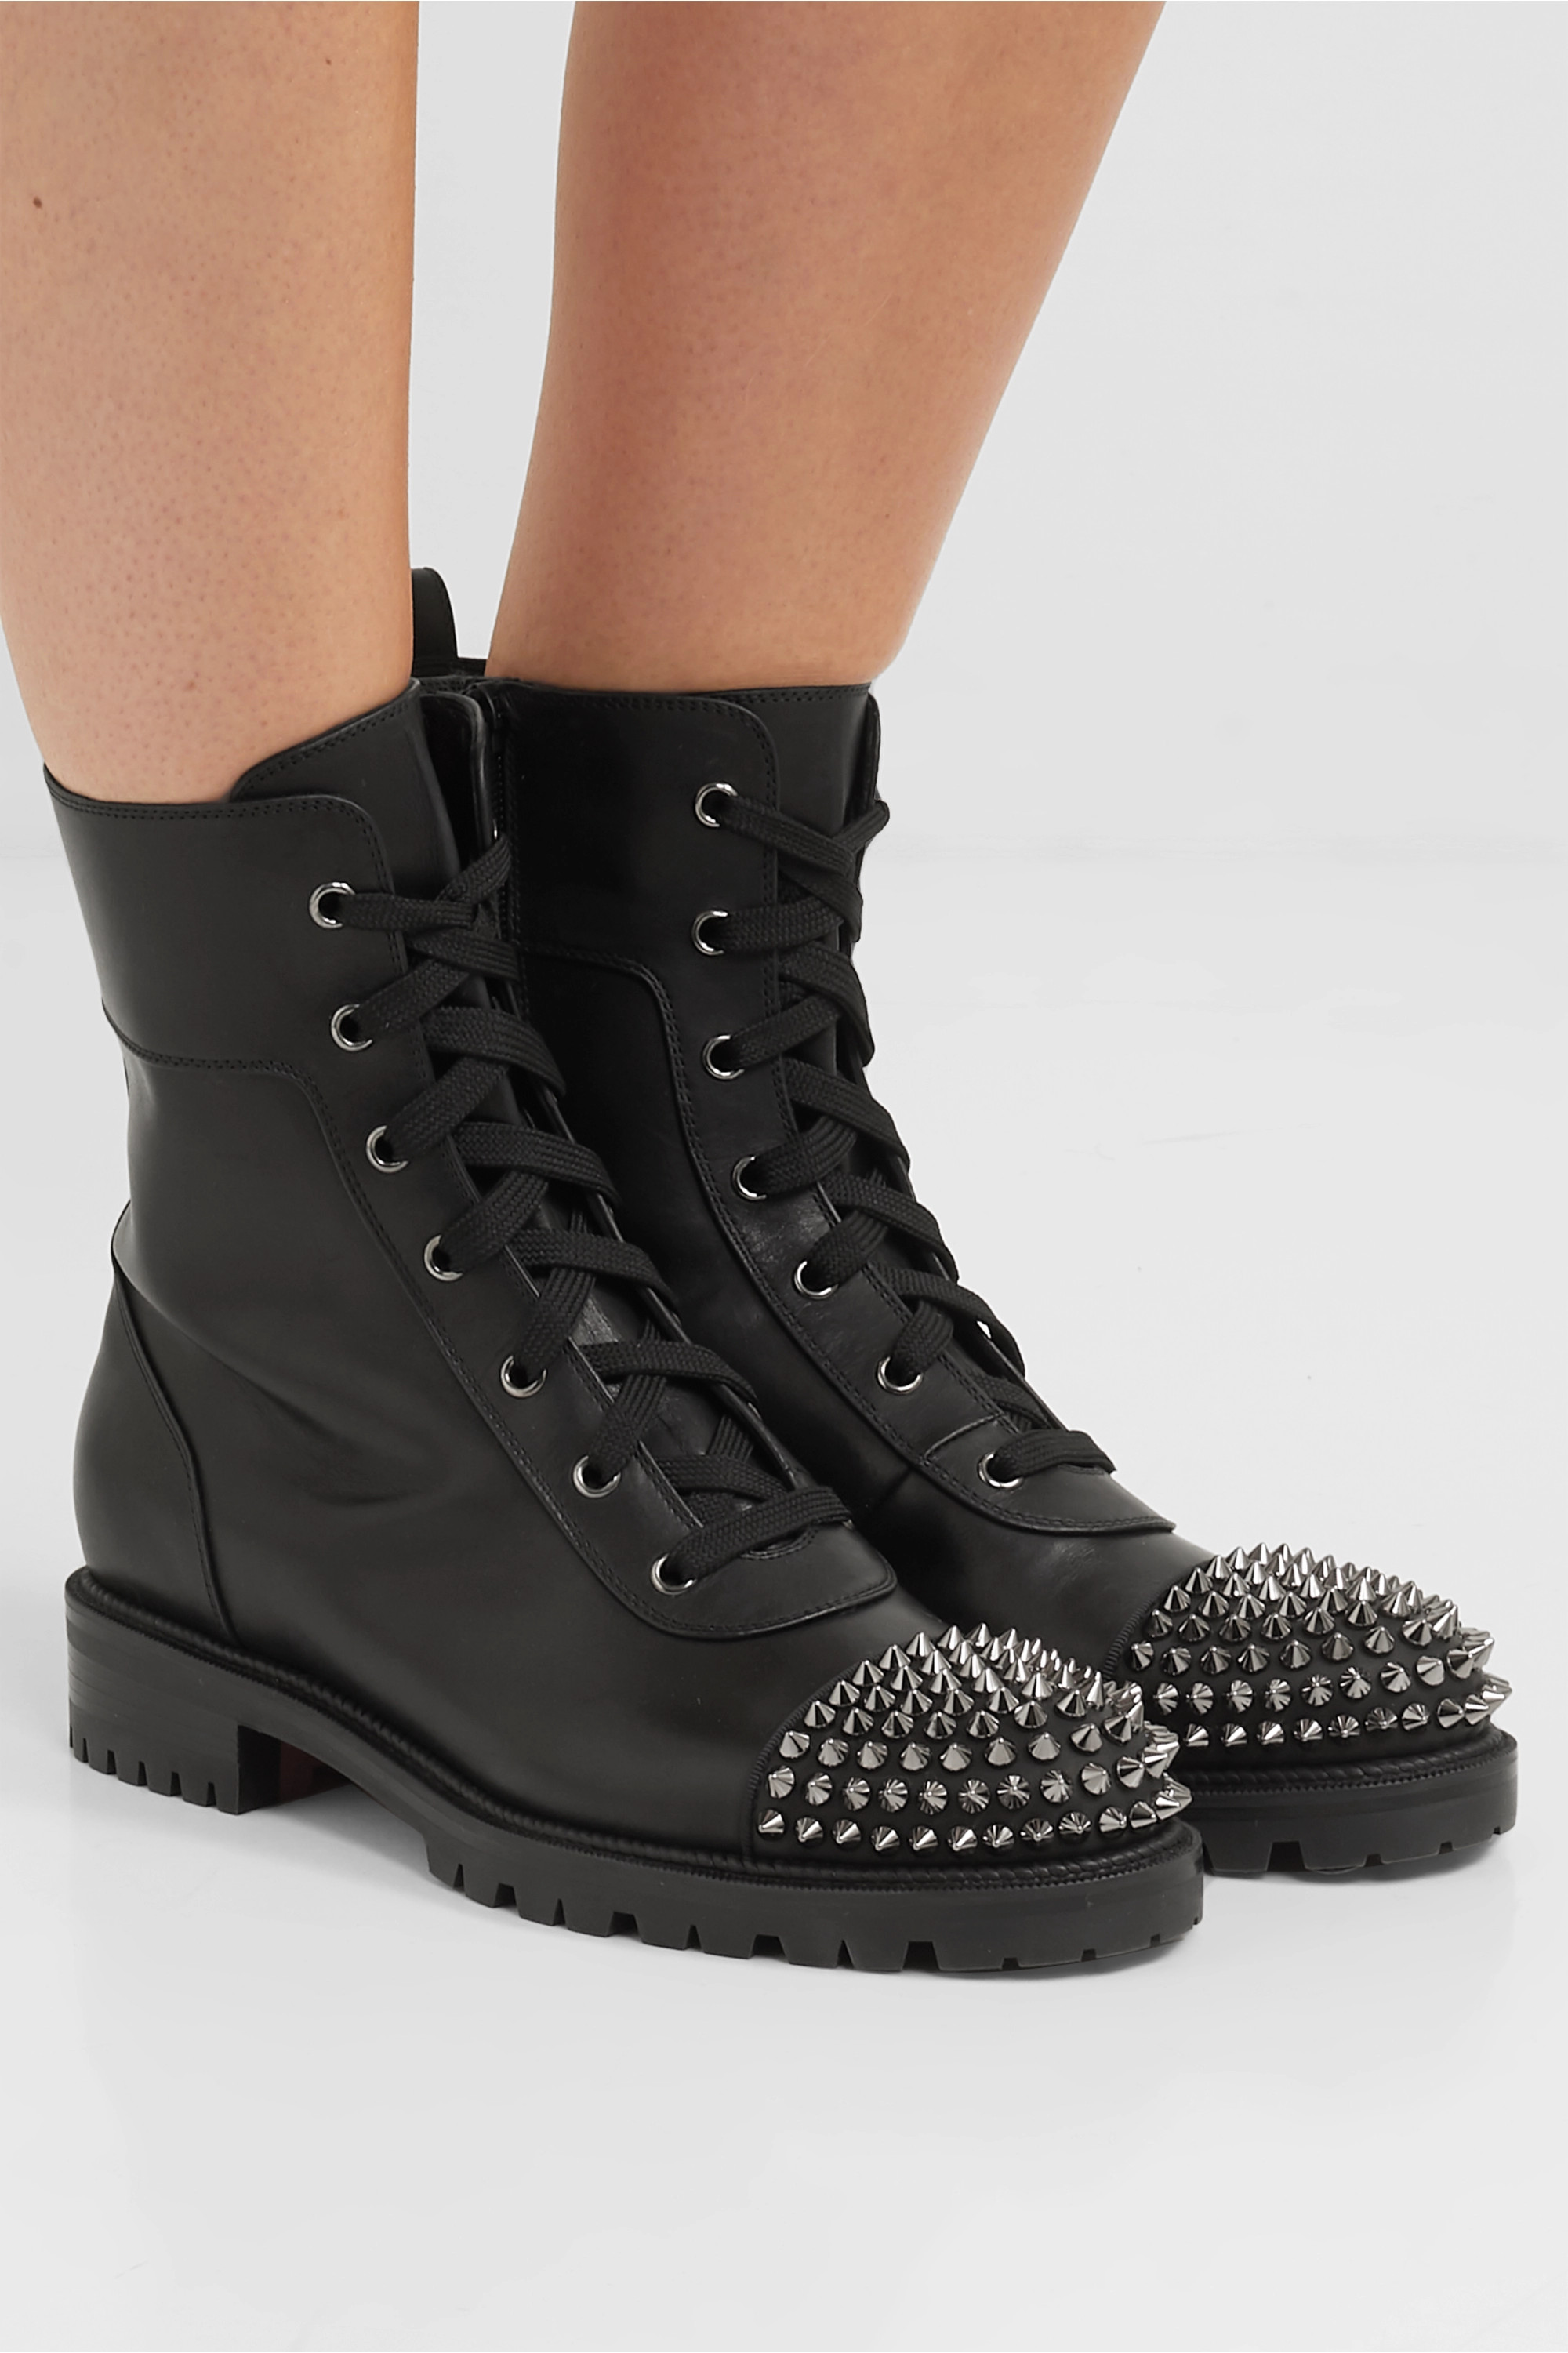 Black Spiked leather ankle boots